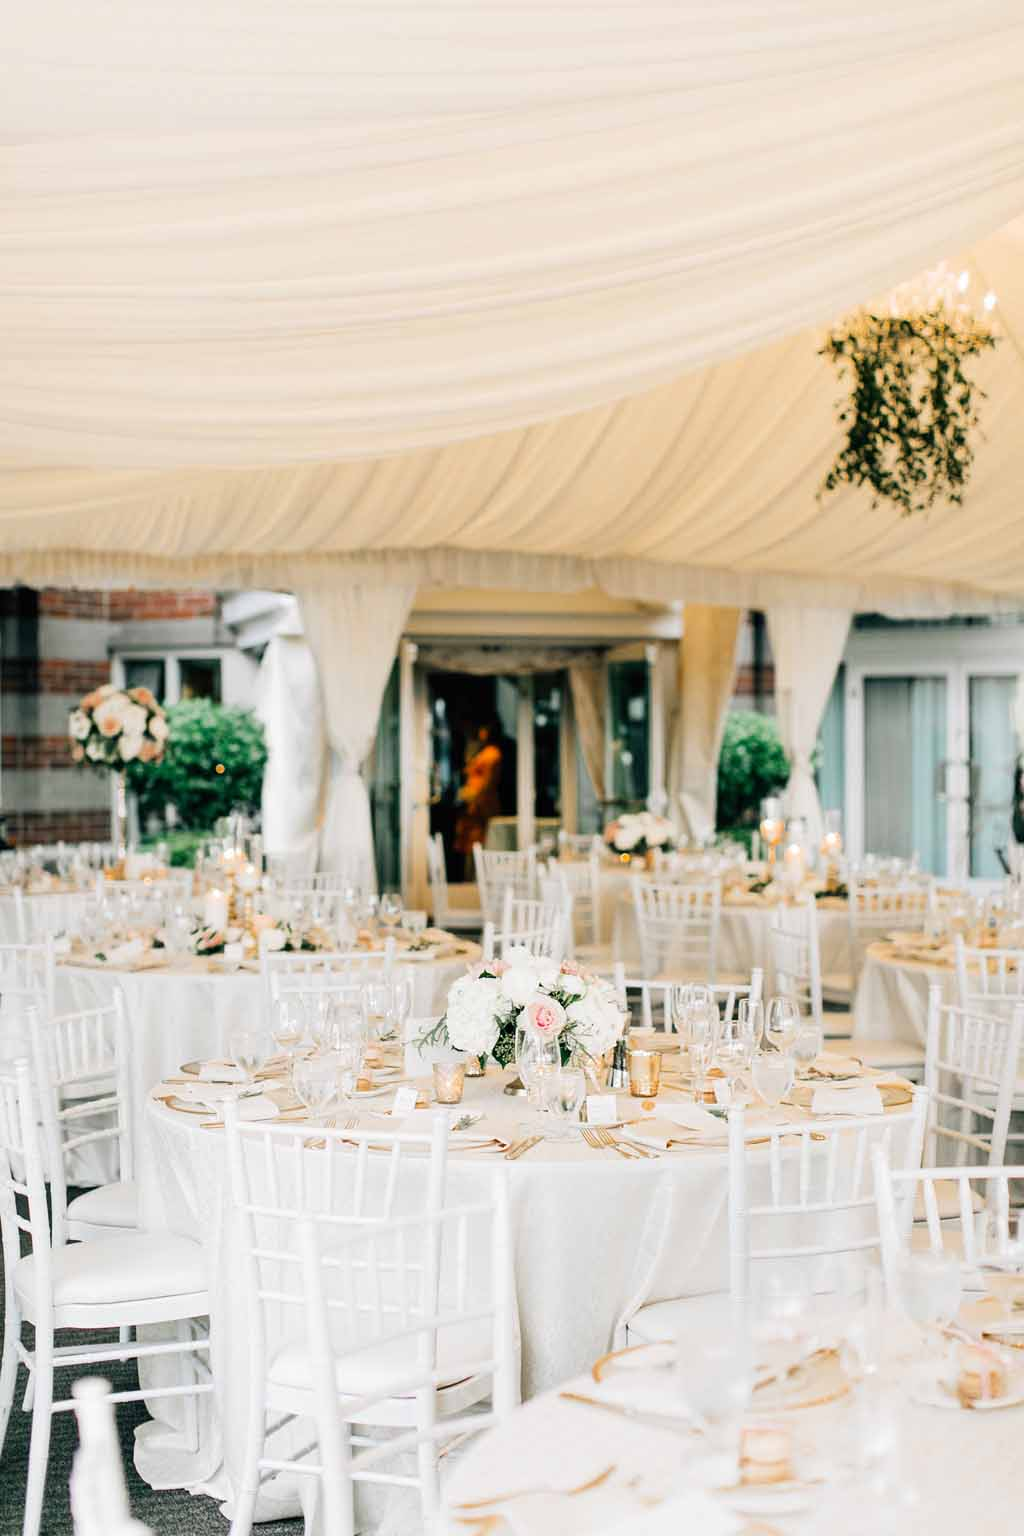 Wedding reception at Woodmark Hotel with white linens, white Chivari chairs, and peach spring centerpieces